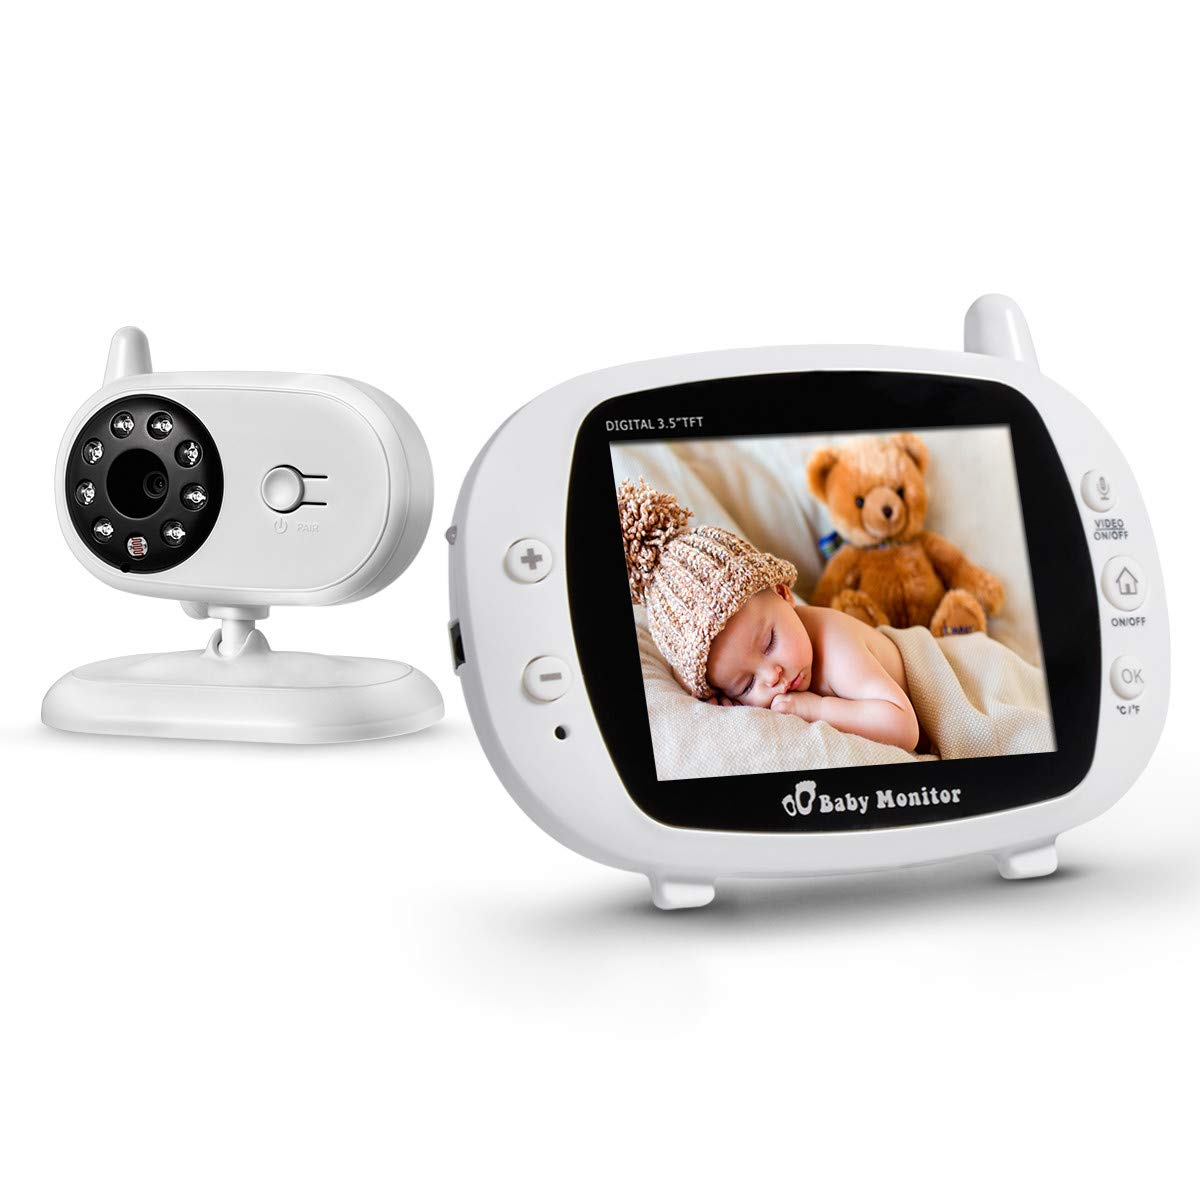 """Firstpower Baby Monitor with Camera and Audio, Easy to Use, 2-Way Talk, 3.5"""" Large LCD Screen, Auto Infrared Night Vision, No Light Pollution, Room Temperature, Lullabies, High Capacity Battery"""